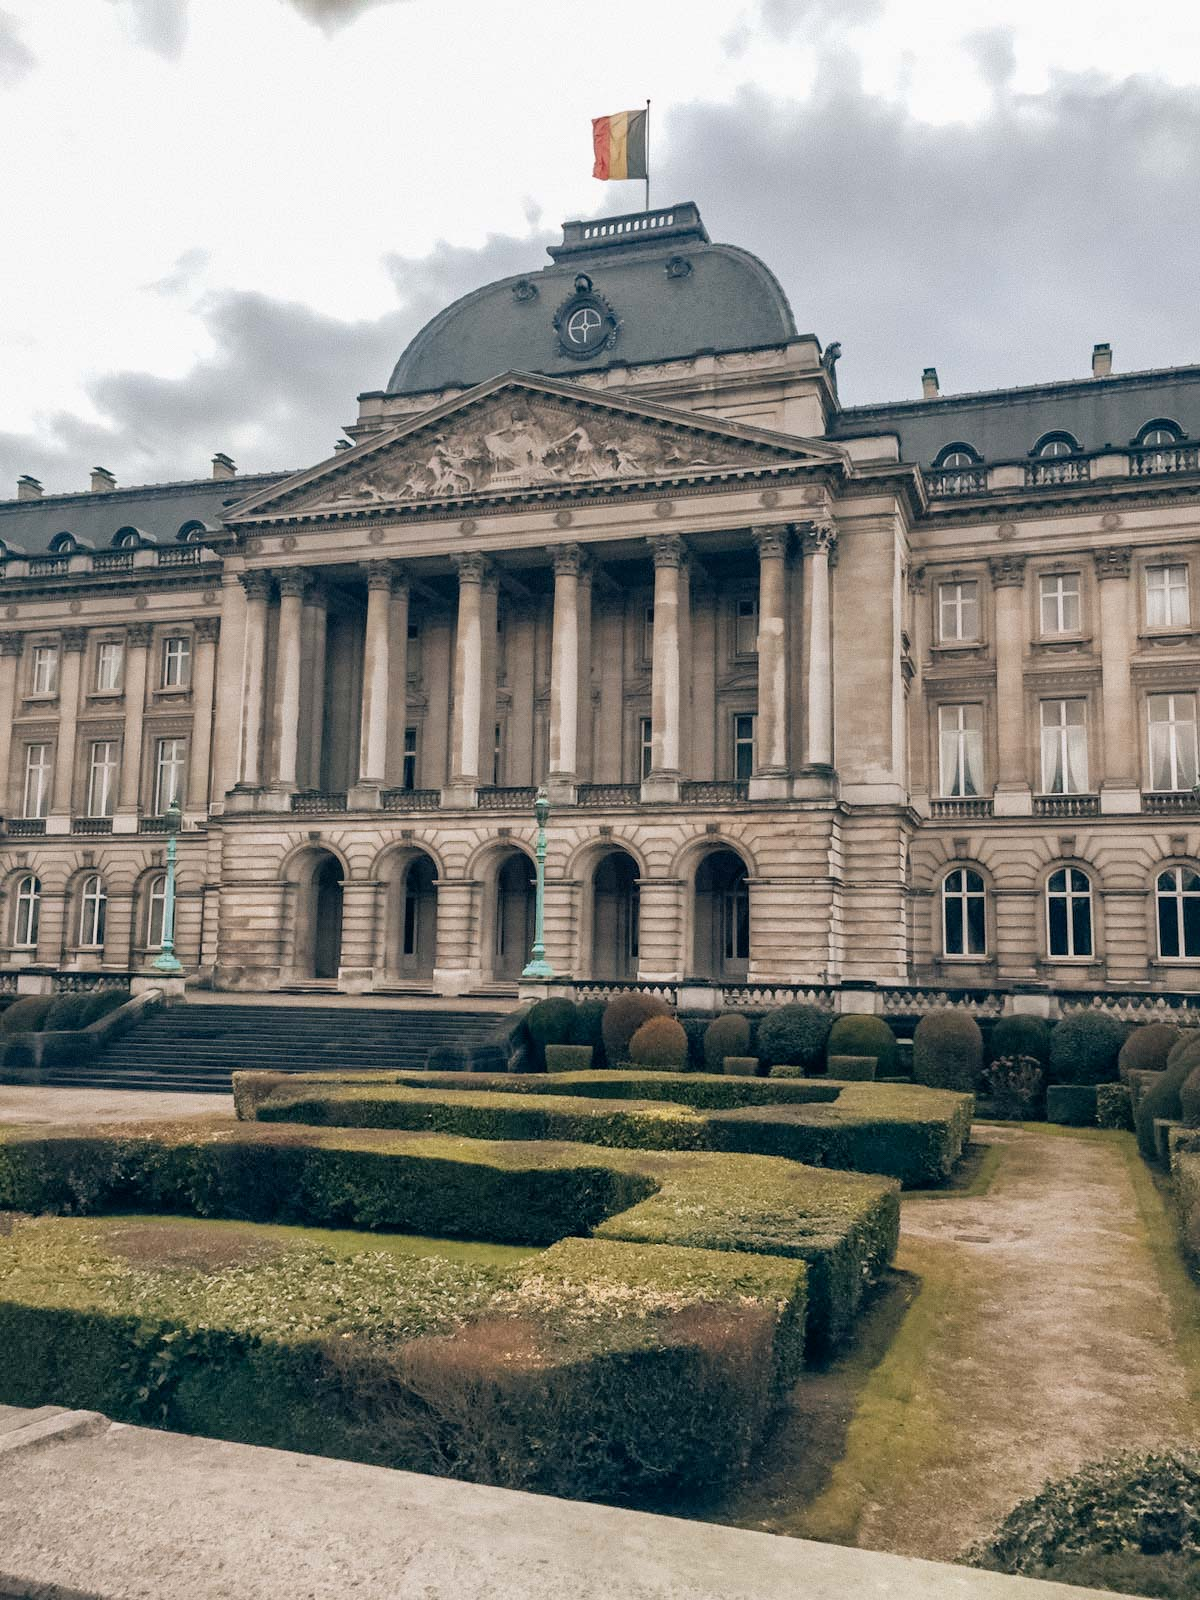 The Royal Palace in Brussels from the facade